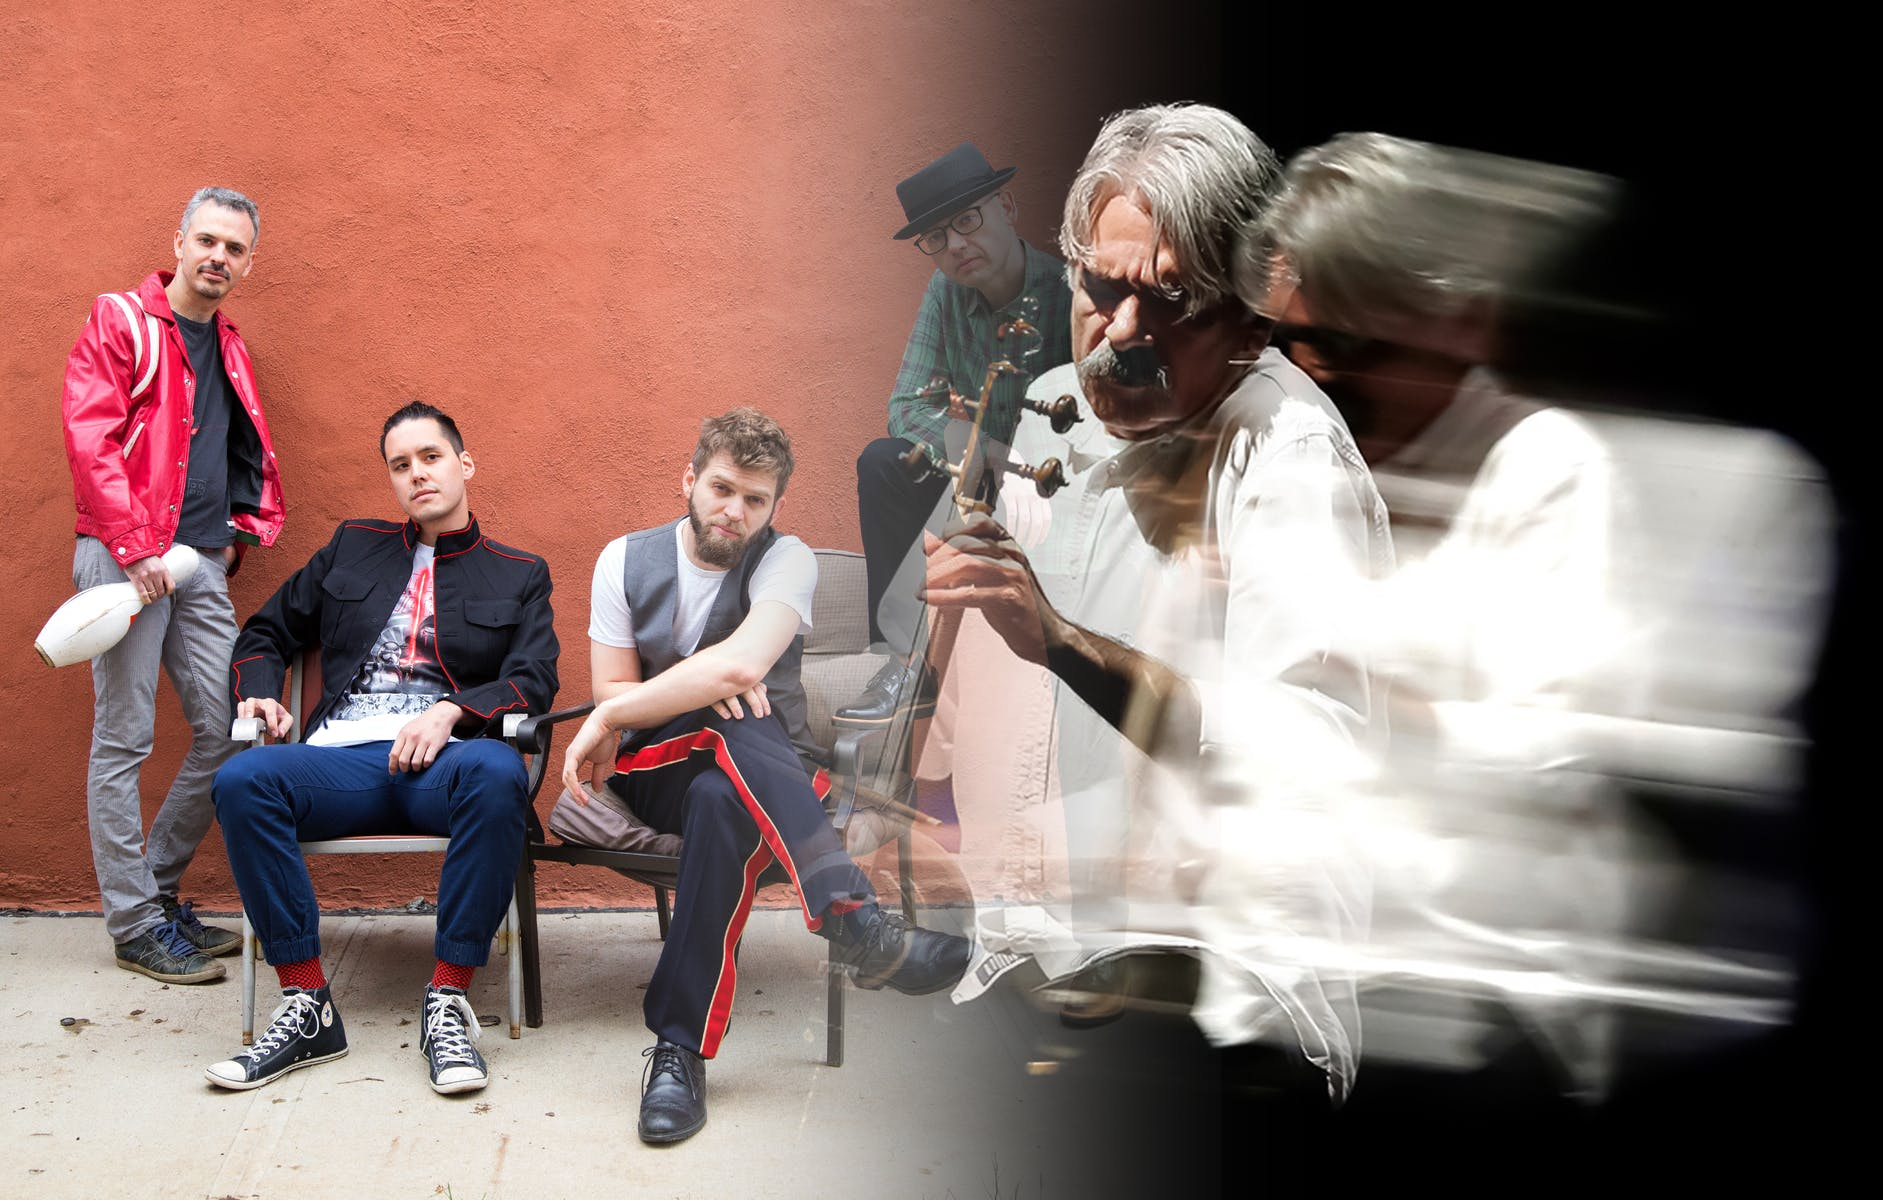 Photo composite of four musicians on the left in front of a brick wall and one musician playing stringed instrument in front of black background on right